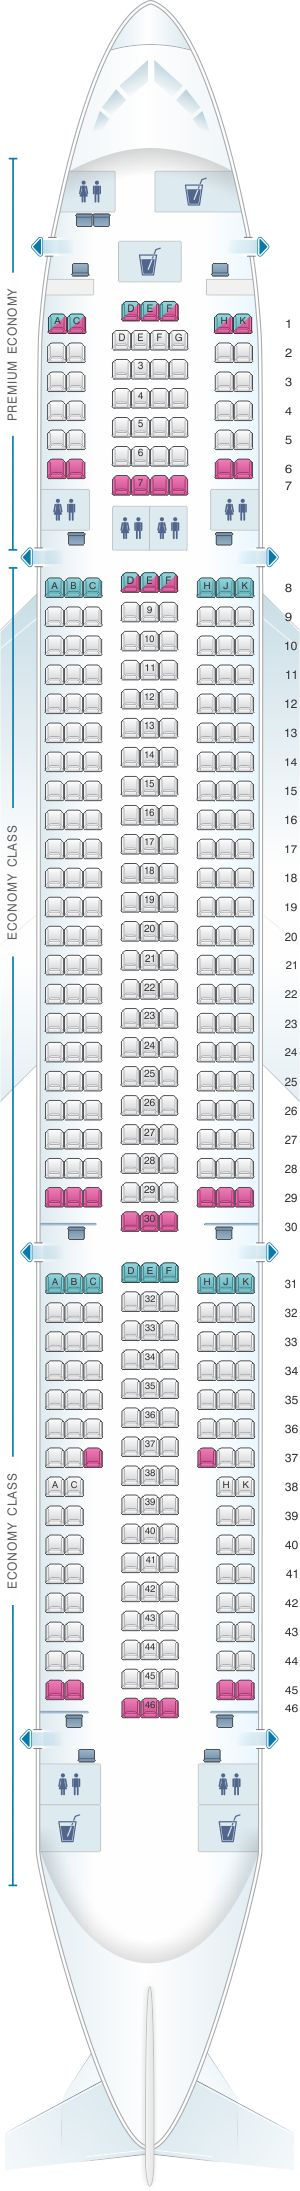 Seat Map Monarch Airlines Airbus A330 200